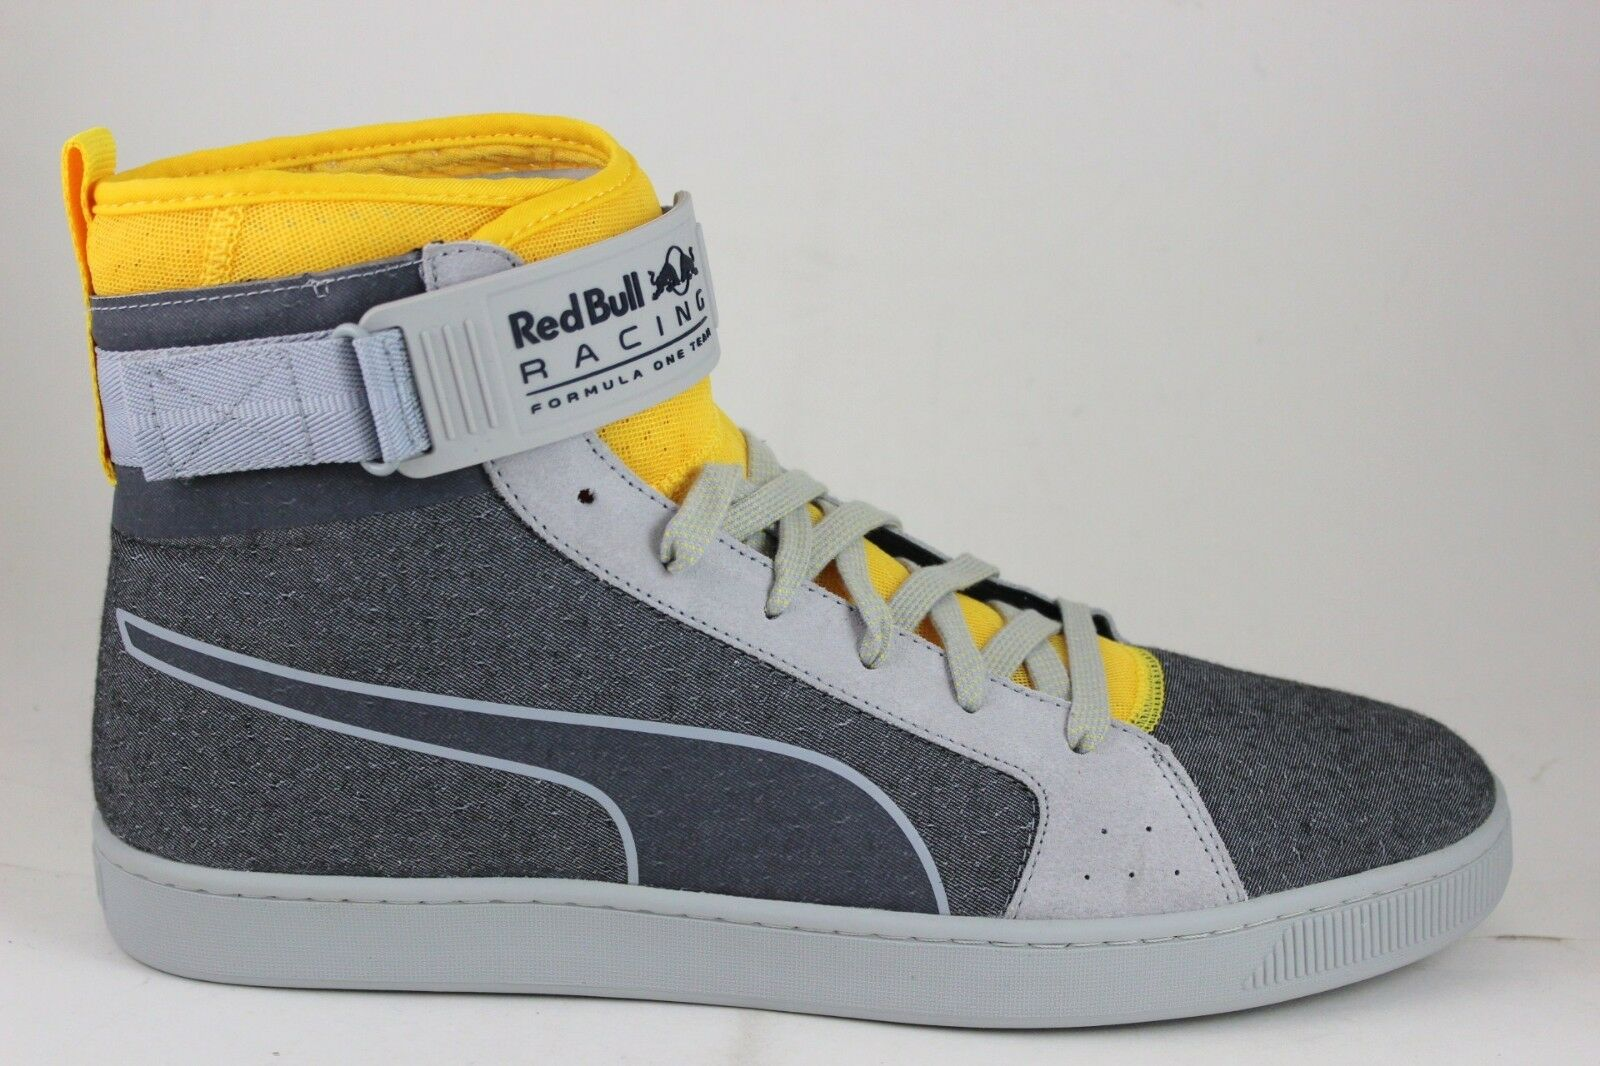 Homme Puma RBR CUPS Mid 306035 02 New In Box